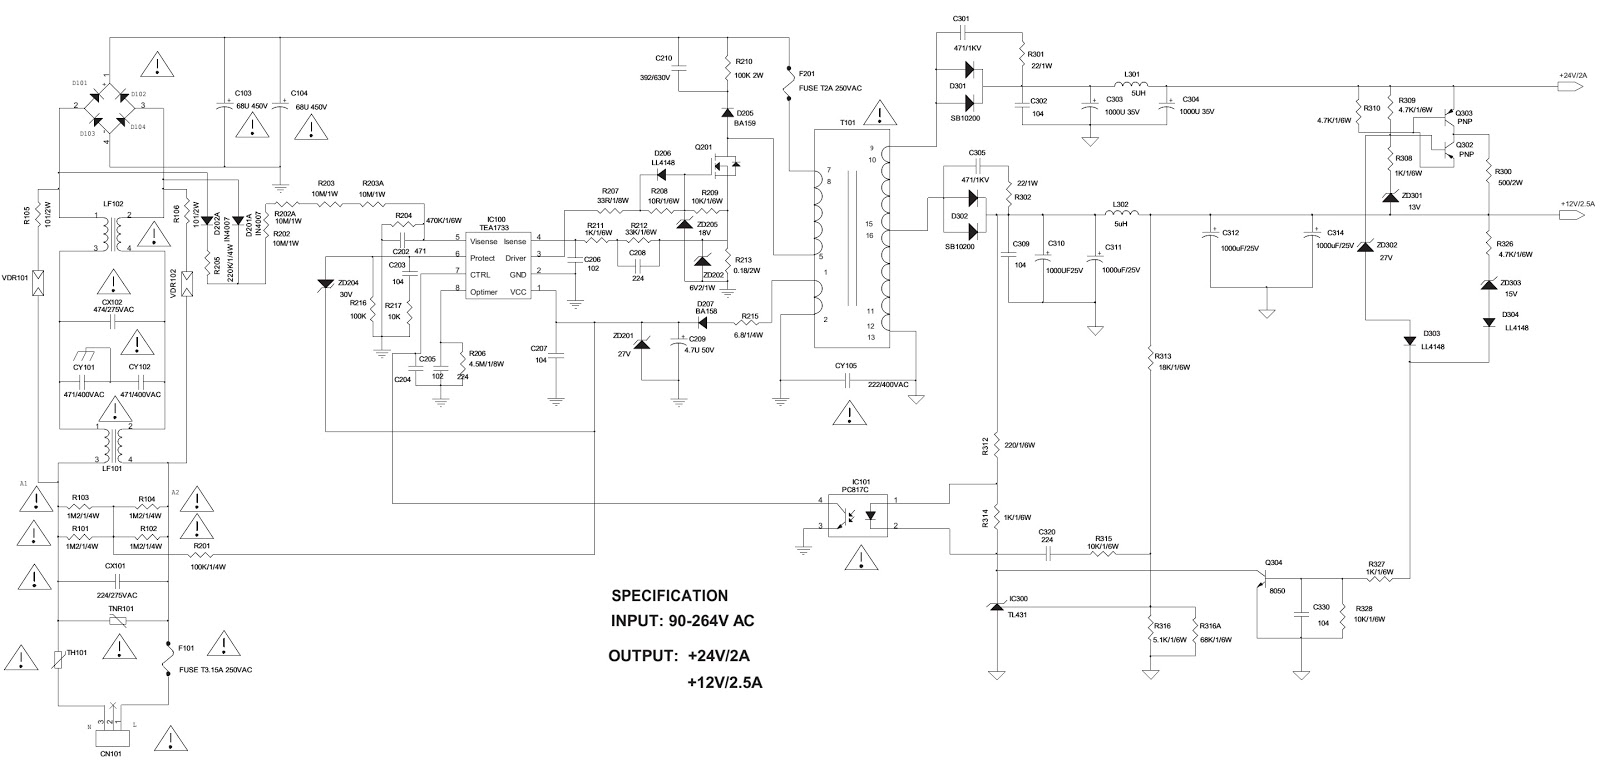 FIG 1 toshiba le3273 toshiba le3973 led lcd tv smps circuit diagram toshiba motor wiring diagram at readyjetset.co